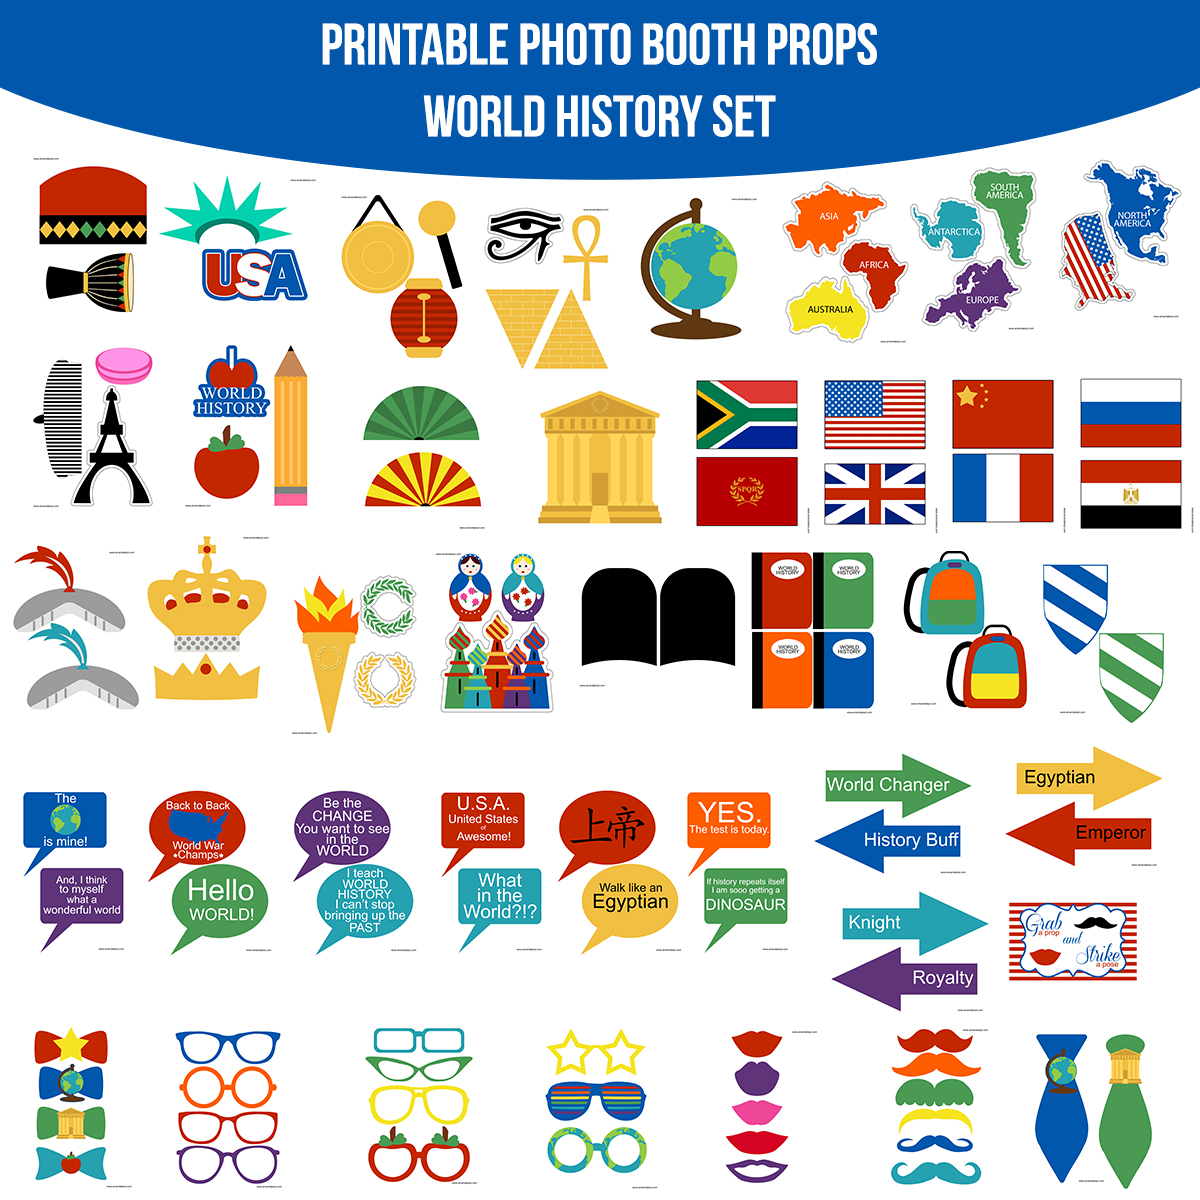 See the Set - To View The Whole World History School Printable Photo Booth Prop Set Click Here